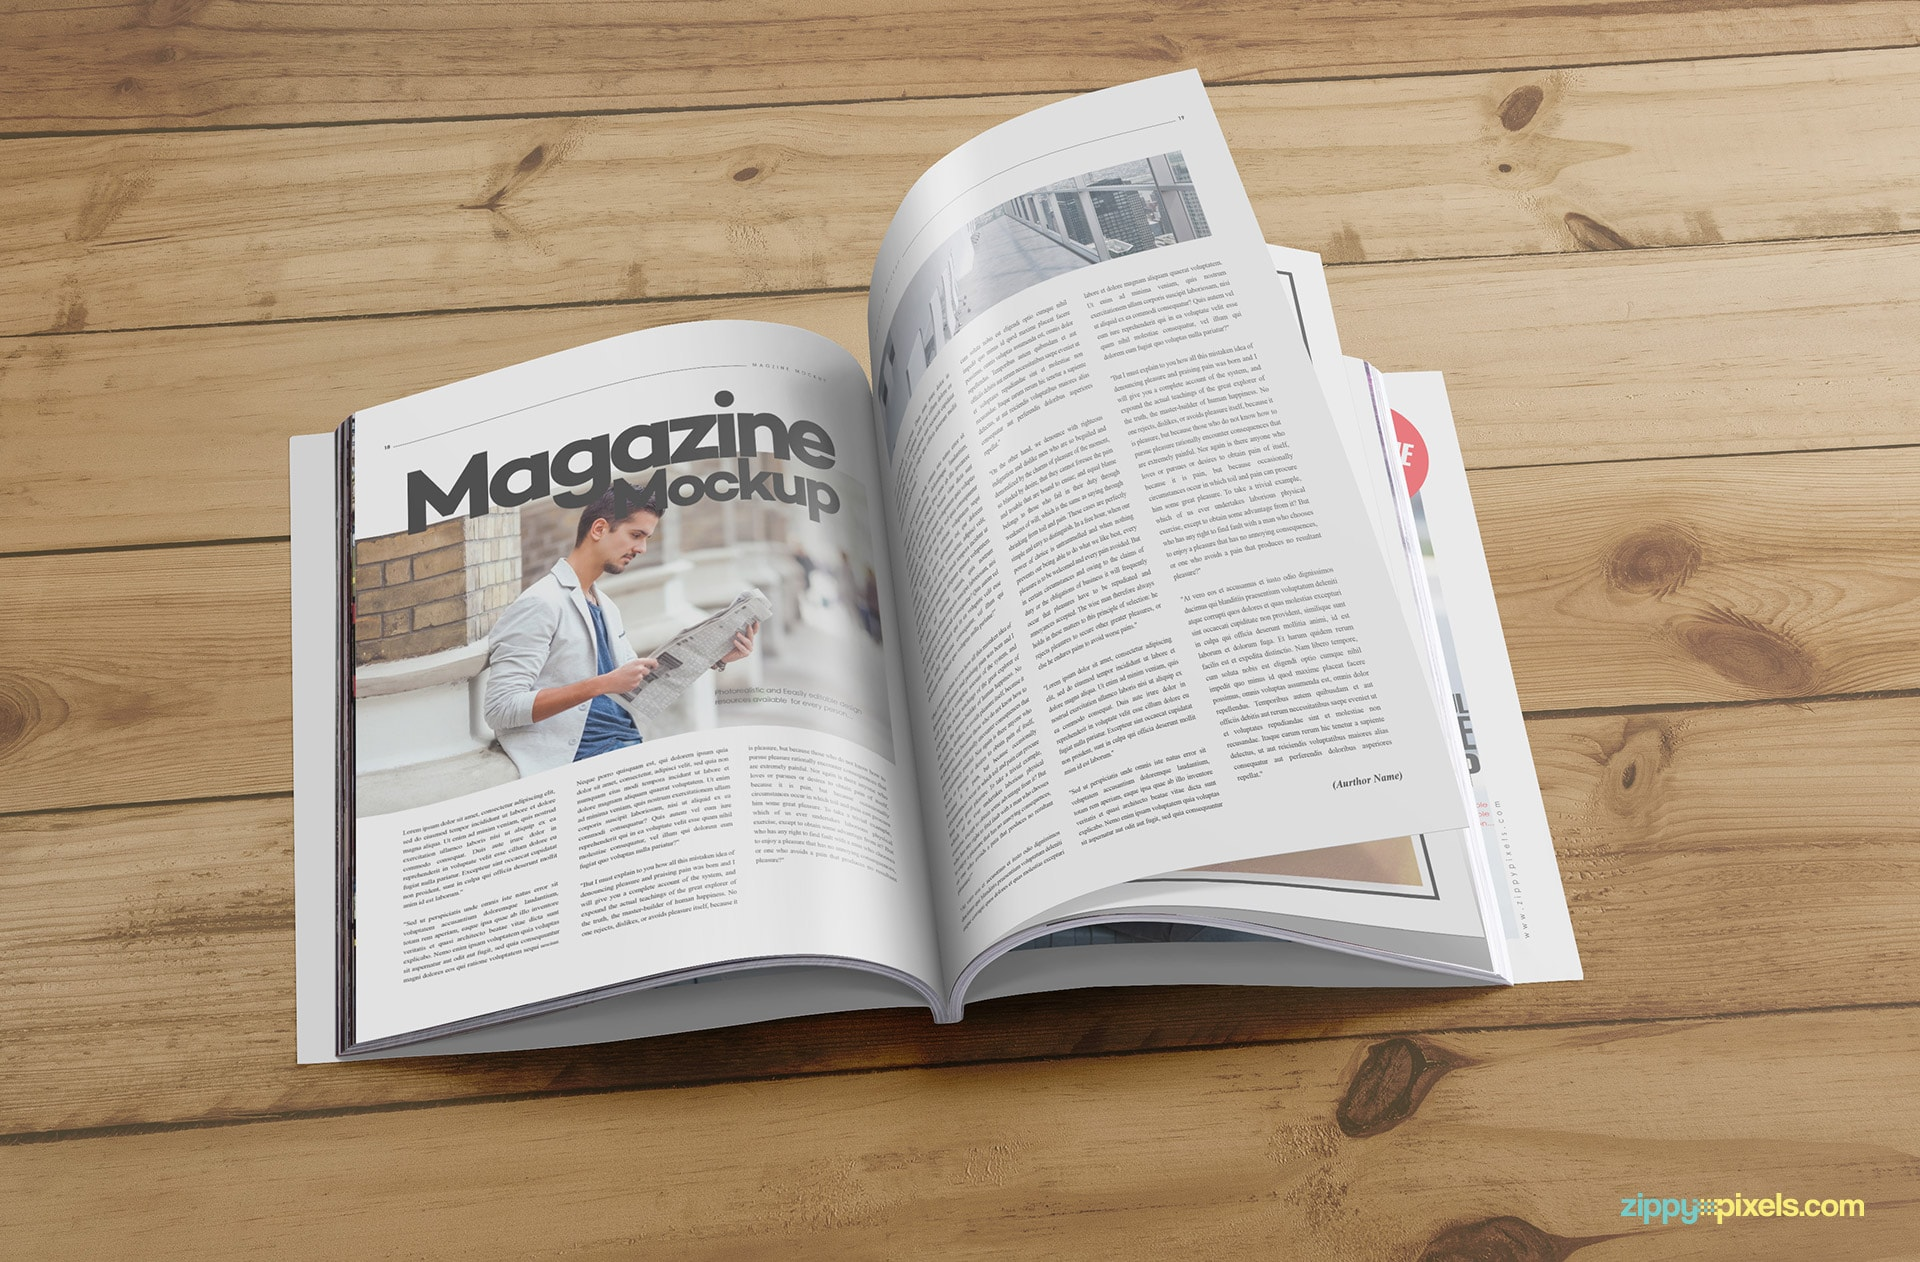 awesome magazine mockup psds in US letter size